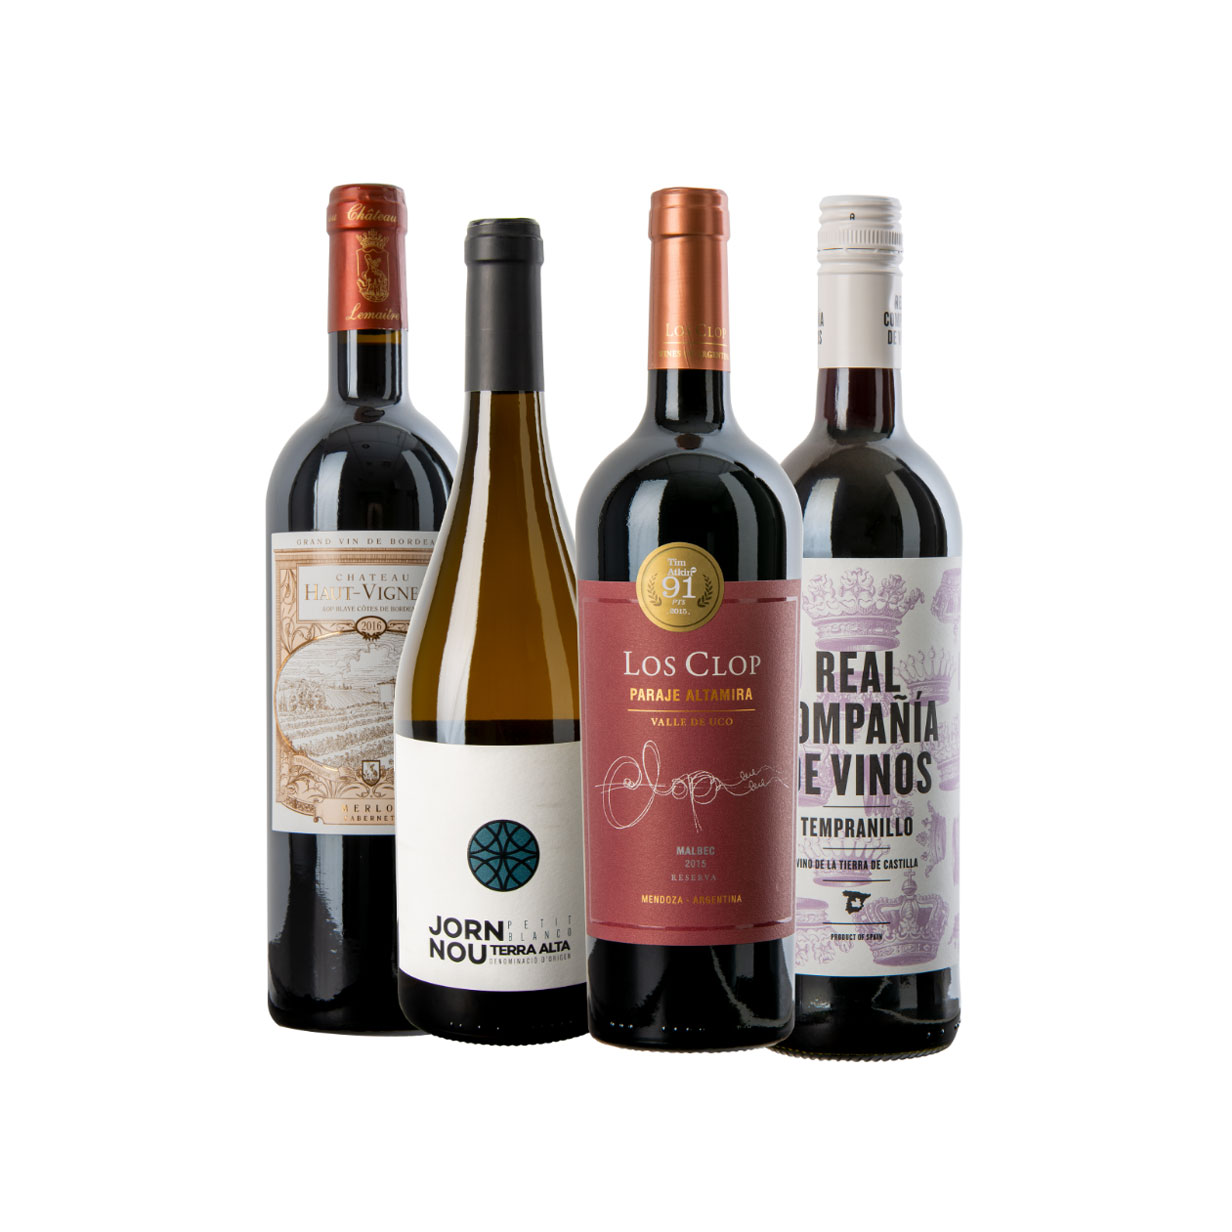 Four bottles of wine, one white and three red, from past WineCollective subscription boxes.